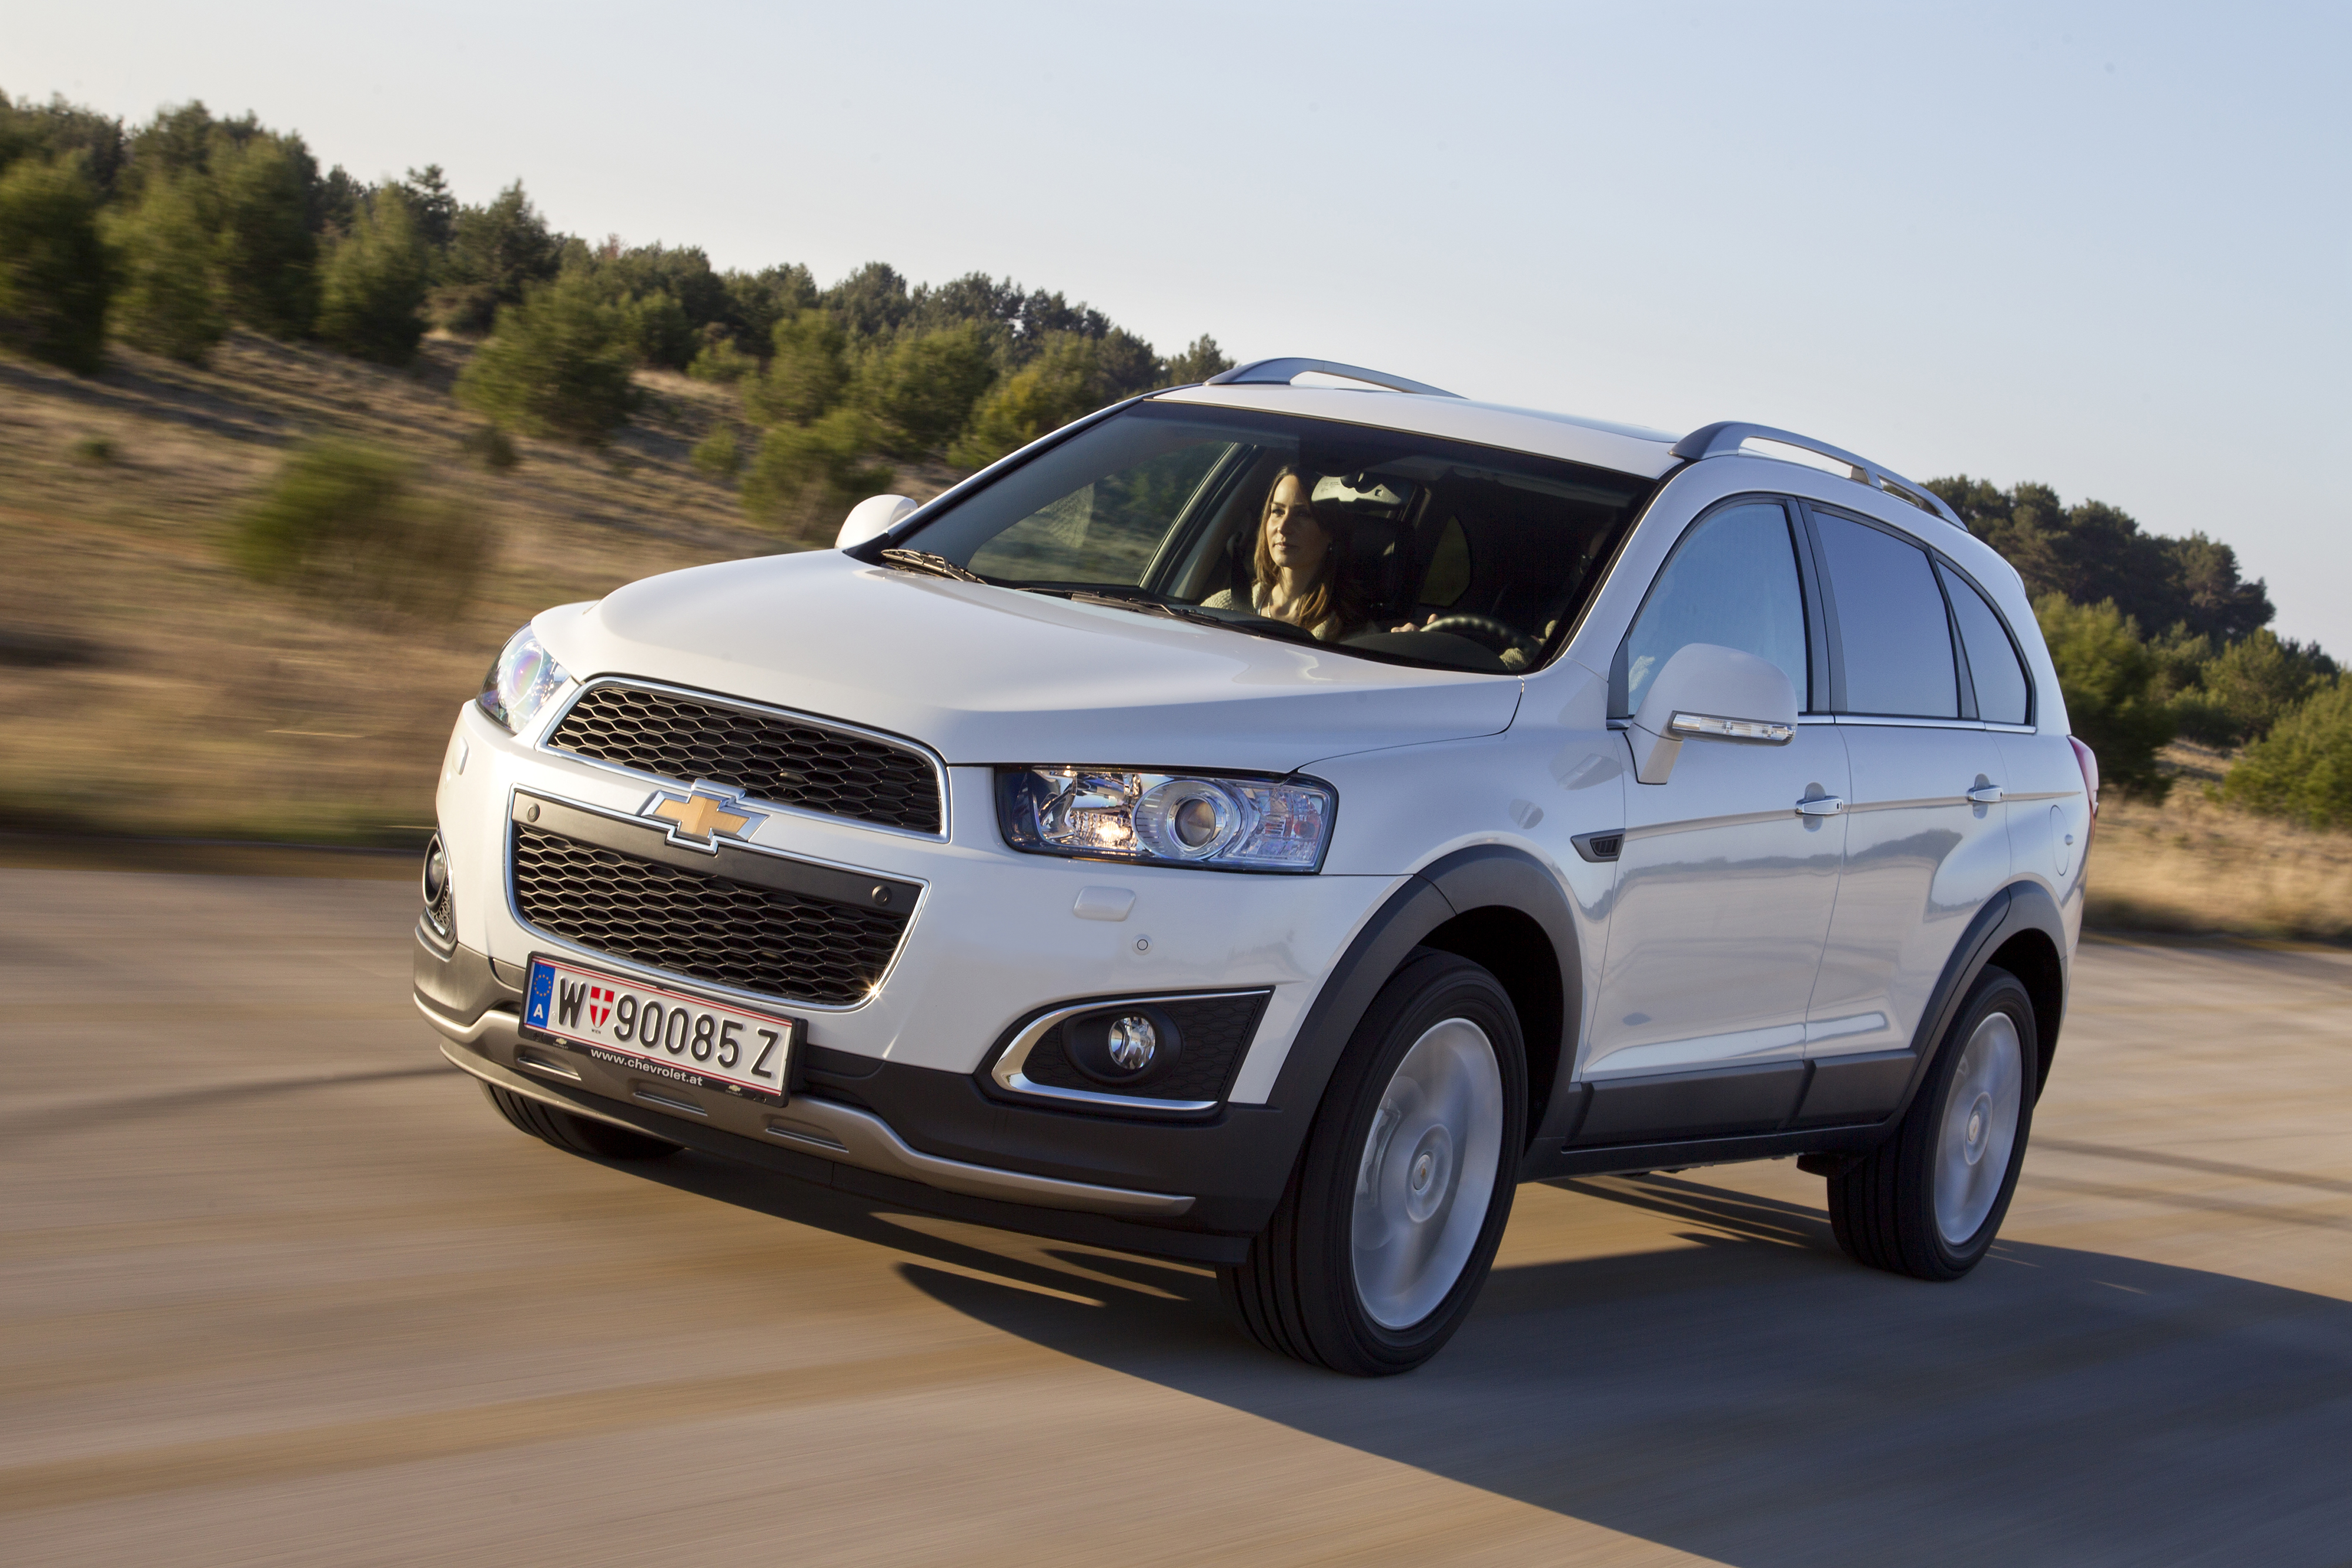 Chevrolet Captiva mod photo